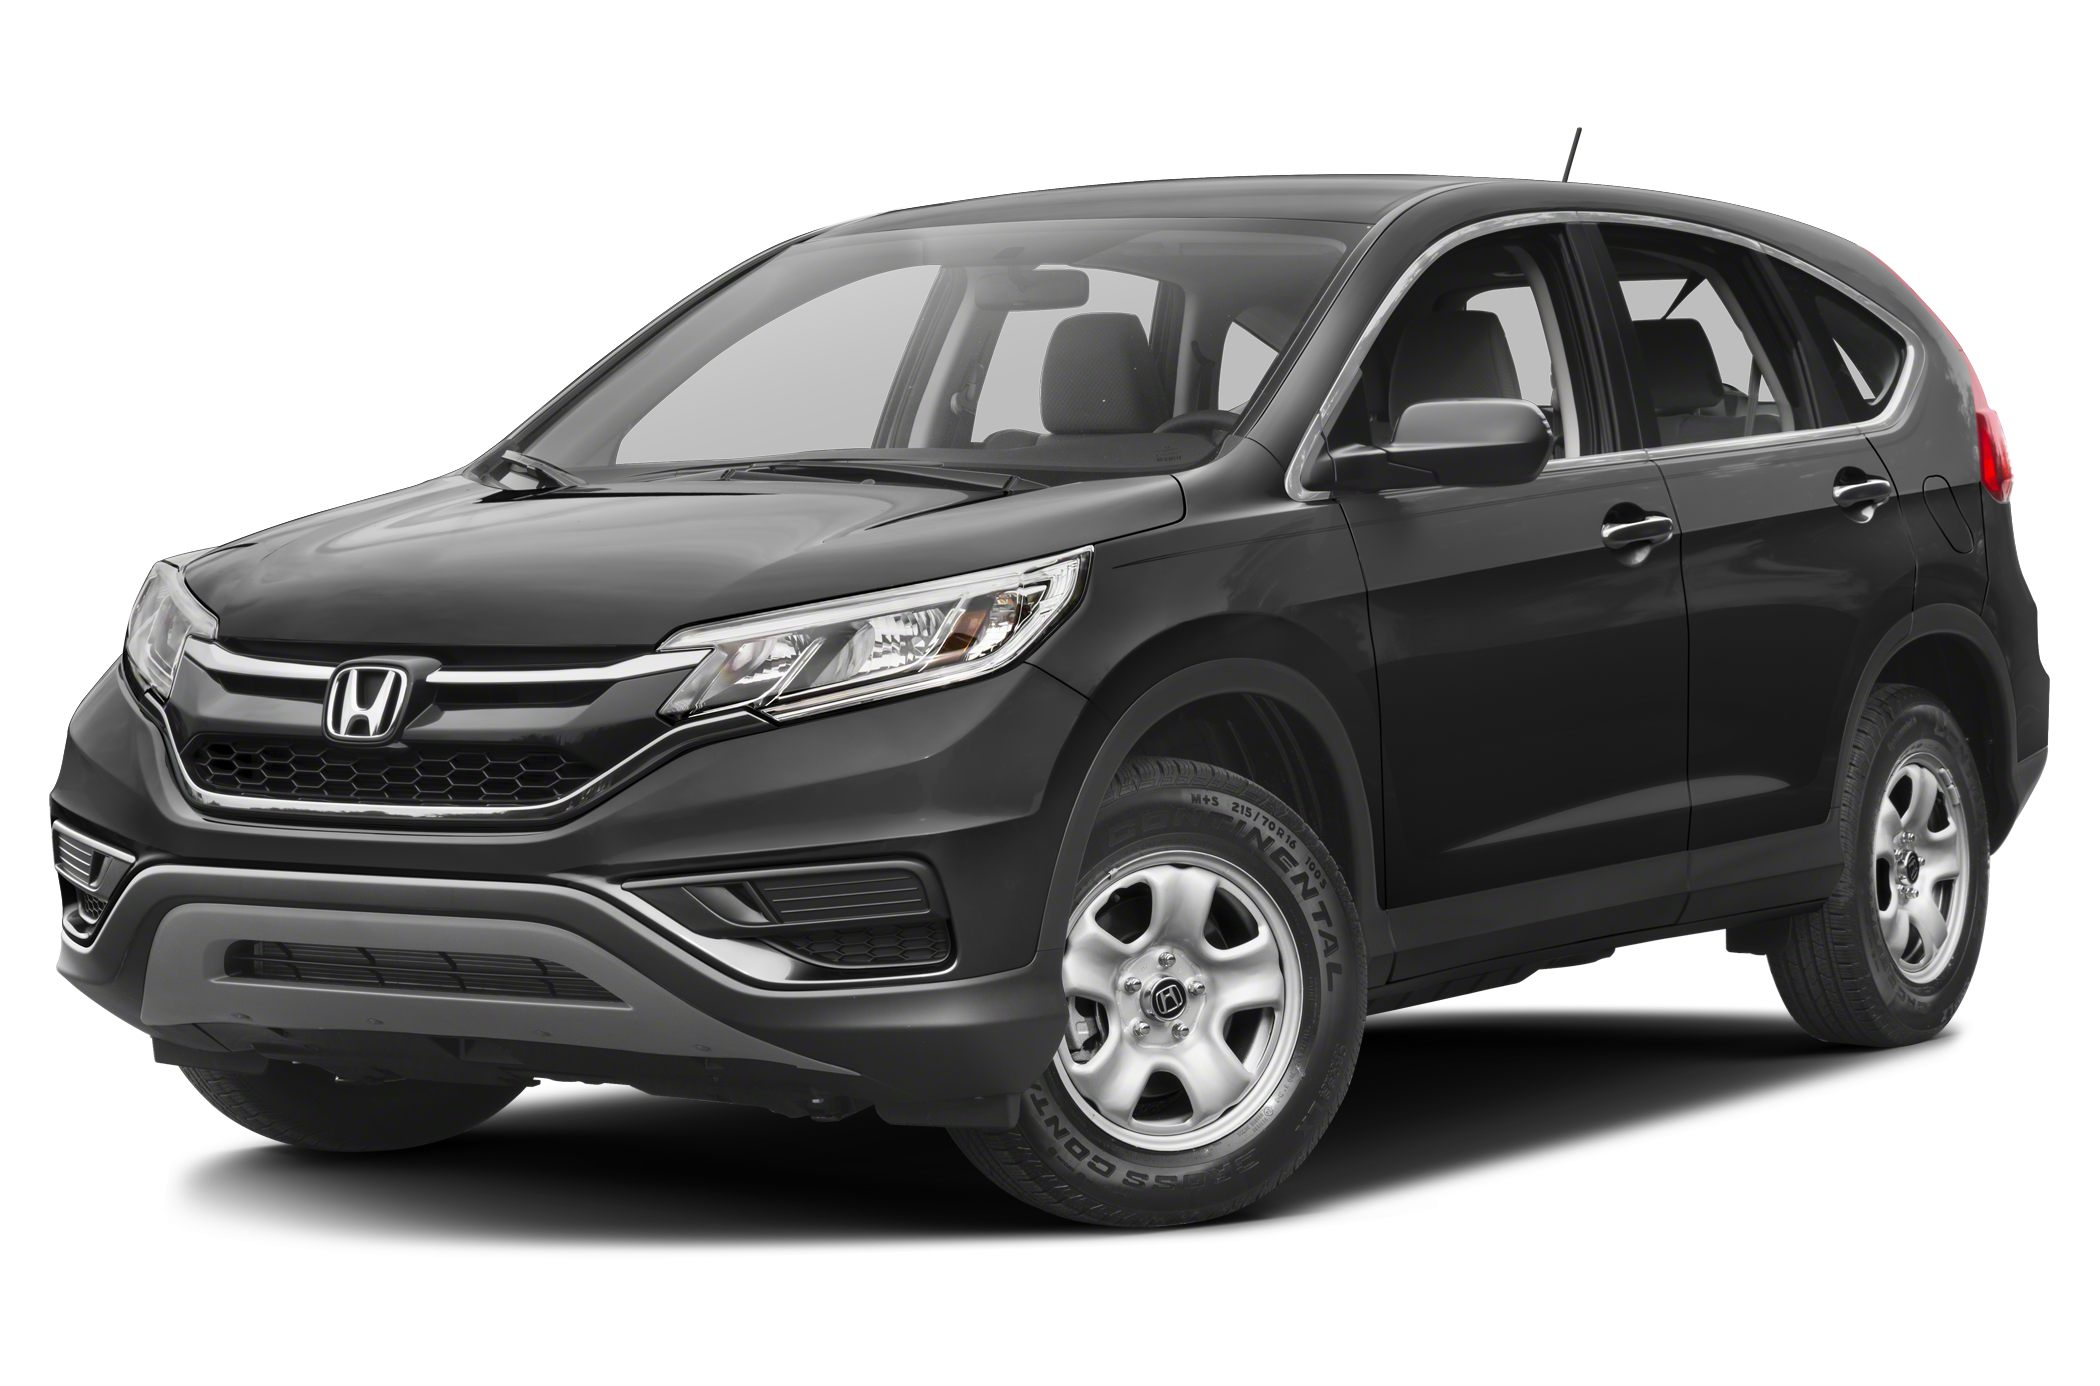 2016 Honda CR-V LX Get ready to ENJOY Move quickly This charming 2016 Honda CR-V is the rare fam